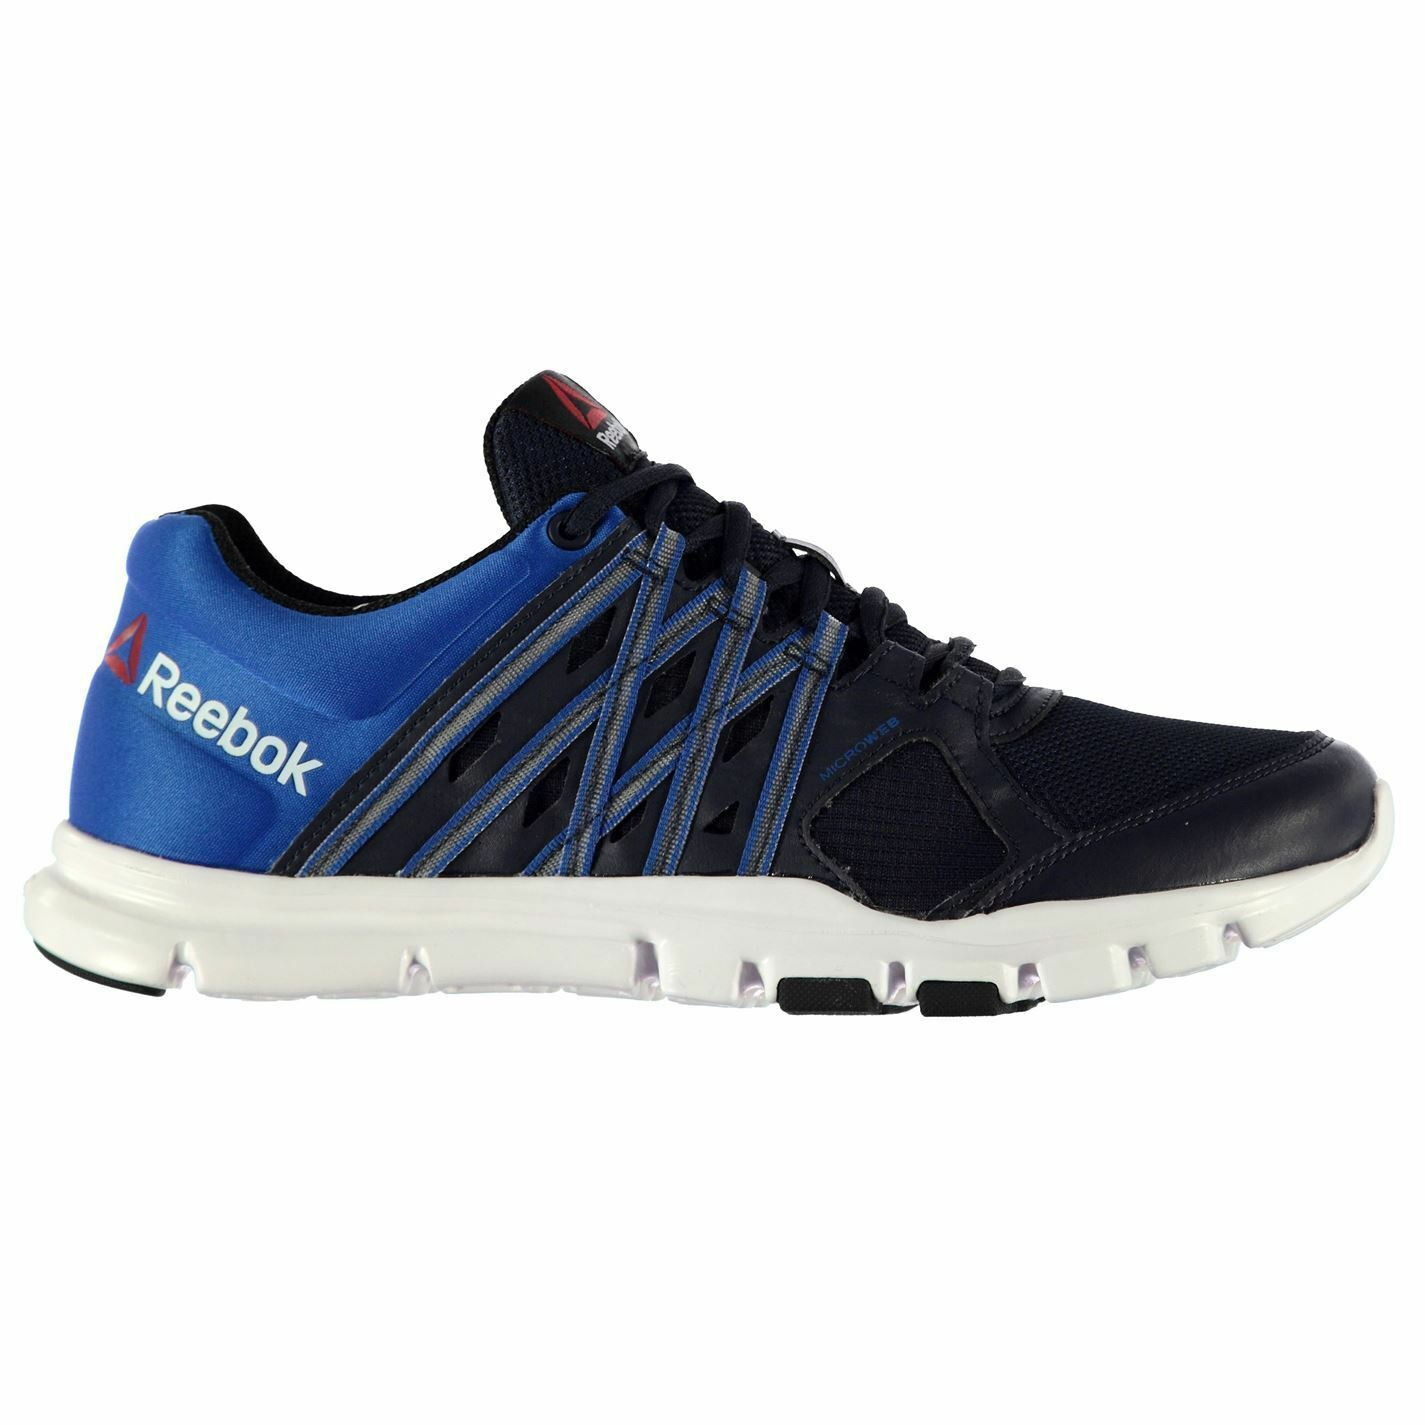 Reebok YourFlex 8 Trainers Mens Footwear Navy/Blue/White Sports Shoes Sneakers Footwear Mens 3307e8